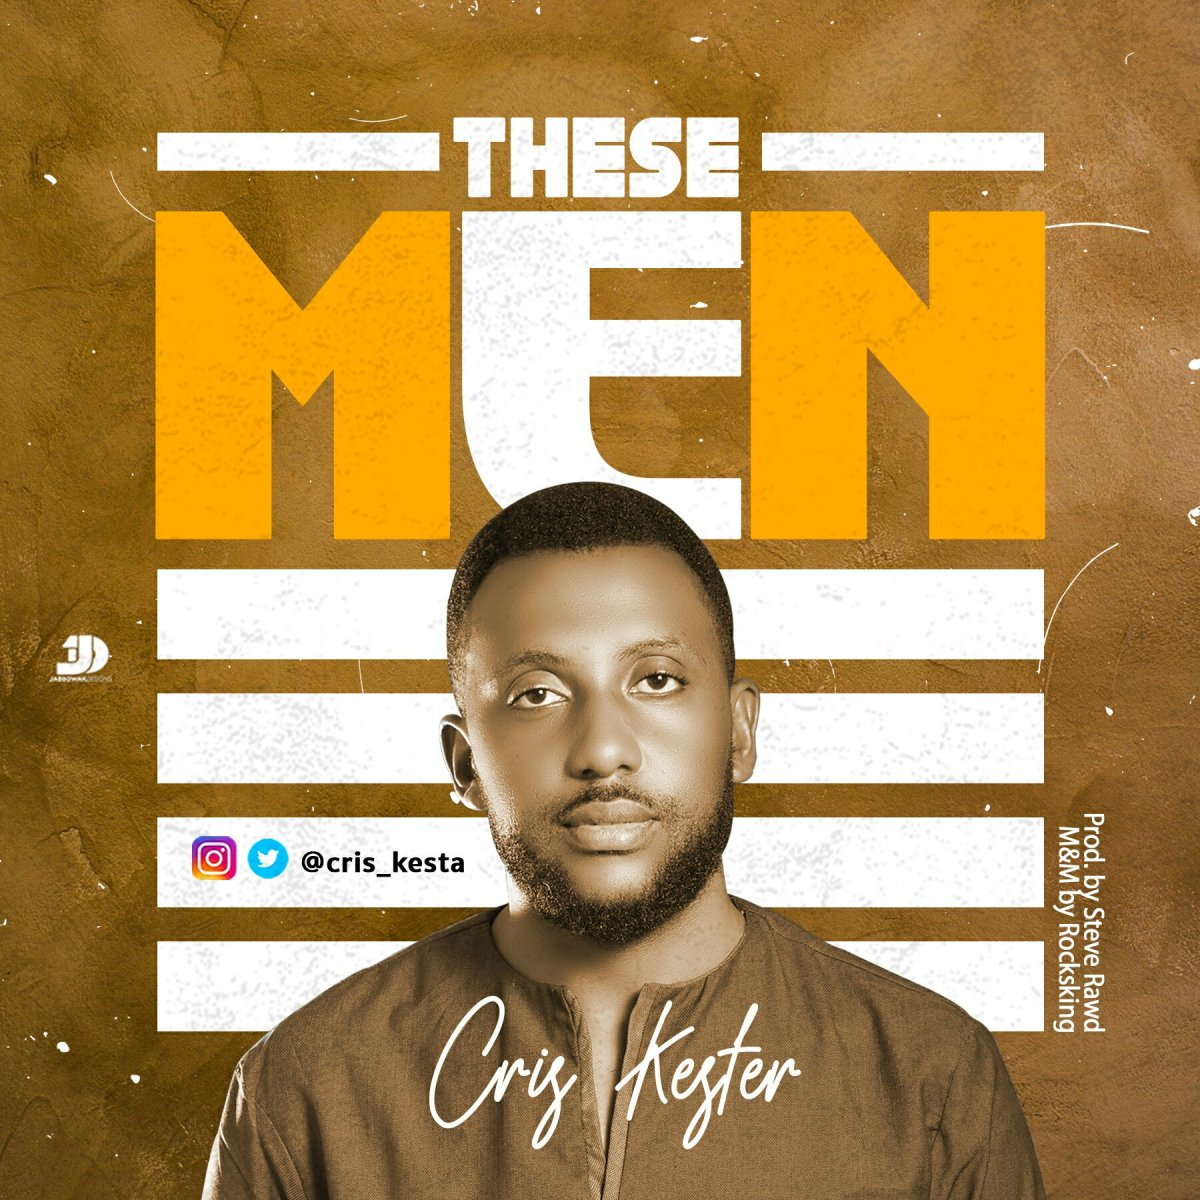 DOWNLOAD Music: Cris Kester - These Men